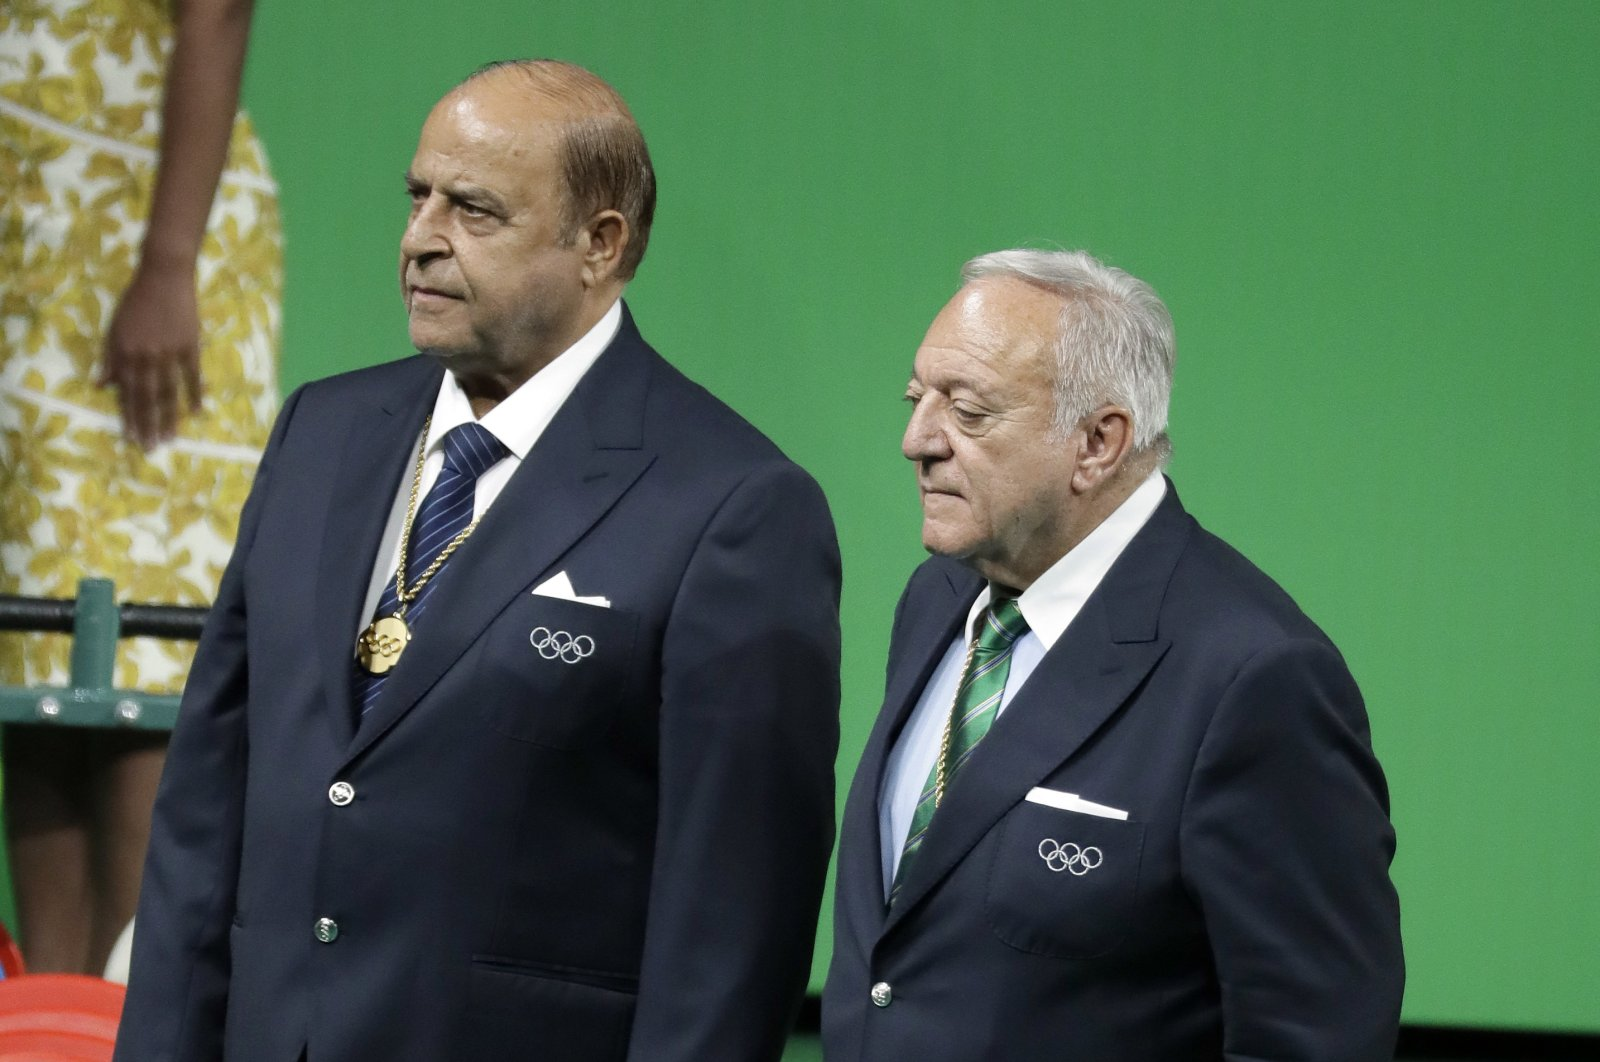 Tamas Ajan (R) and Samih Moudallal, a Syrian former weightlifter and current International Olympic Committee member, attend an awards ceremony at the 2016 Summer Olympics in Rio de Janeiro, Brazil, Aug. 16, 2016. (AP Photo)